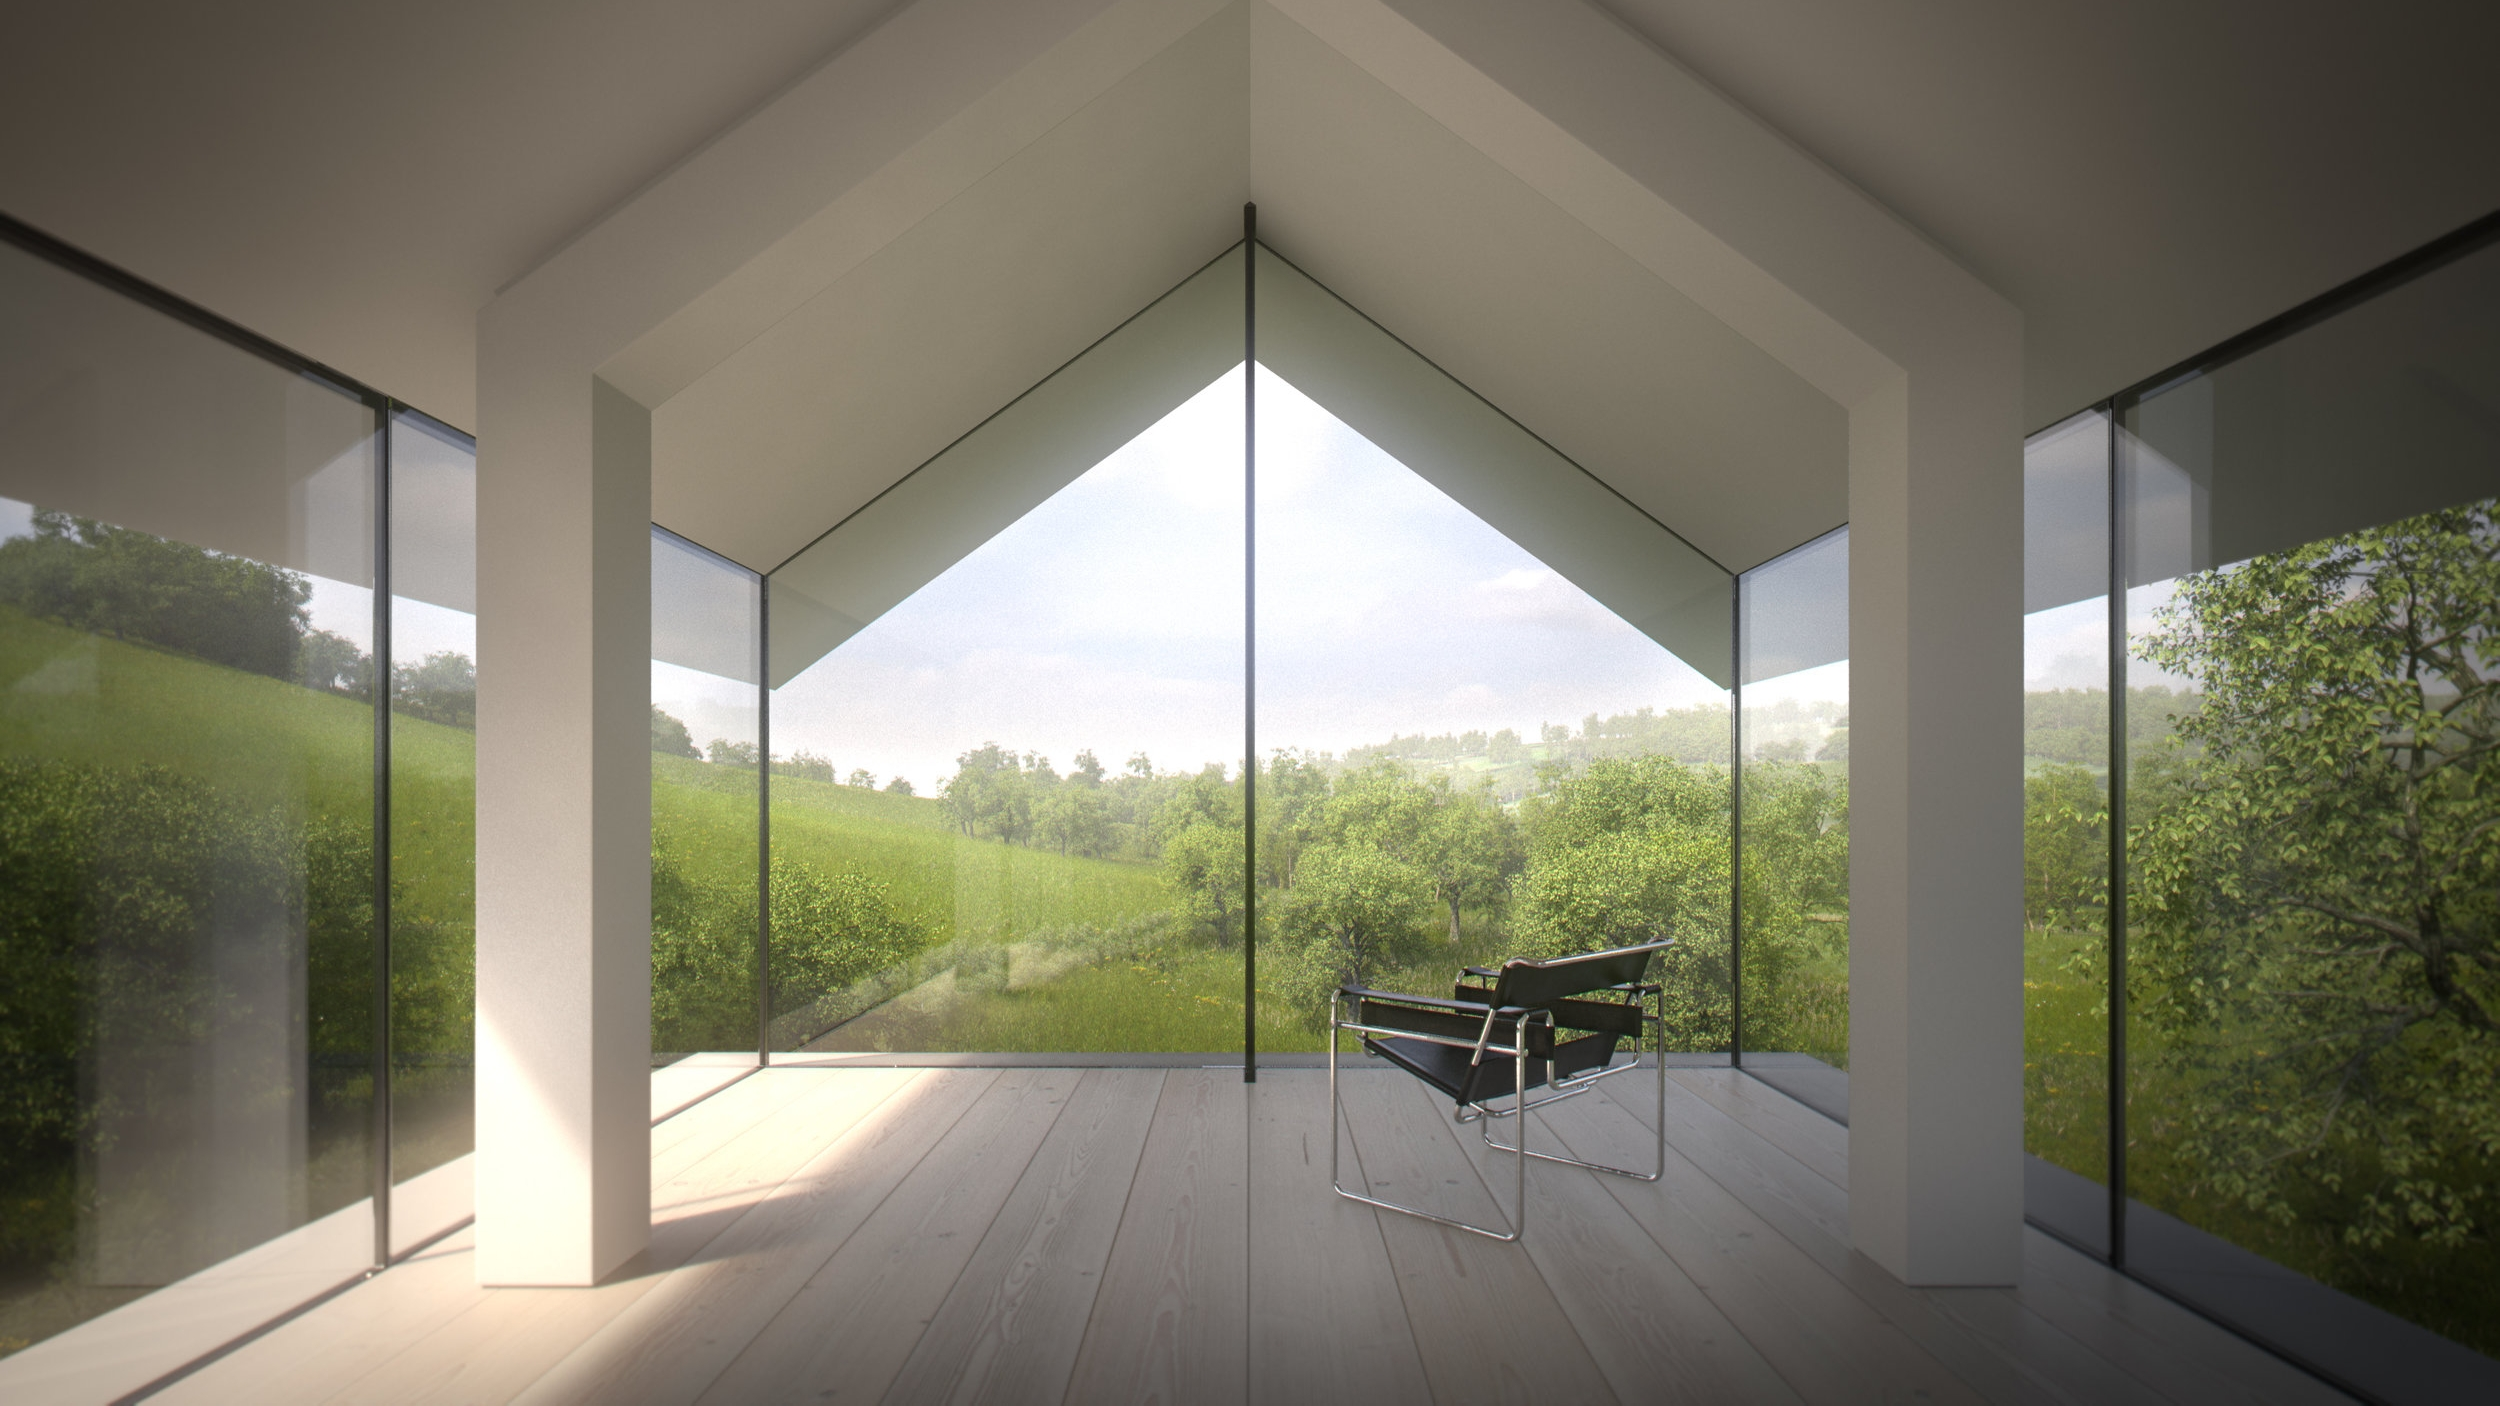 View from Glass Room Overlooking Landscape